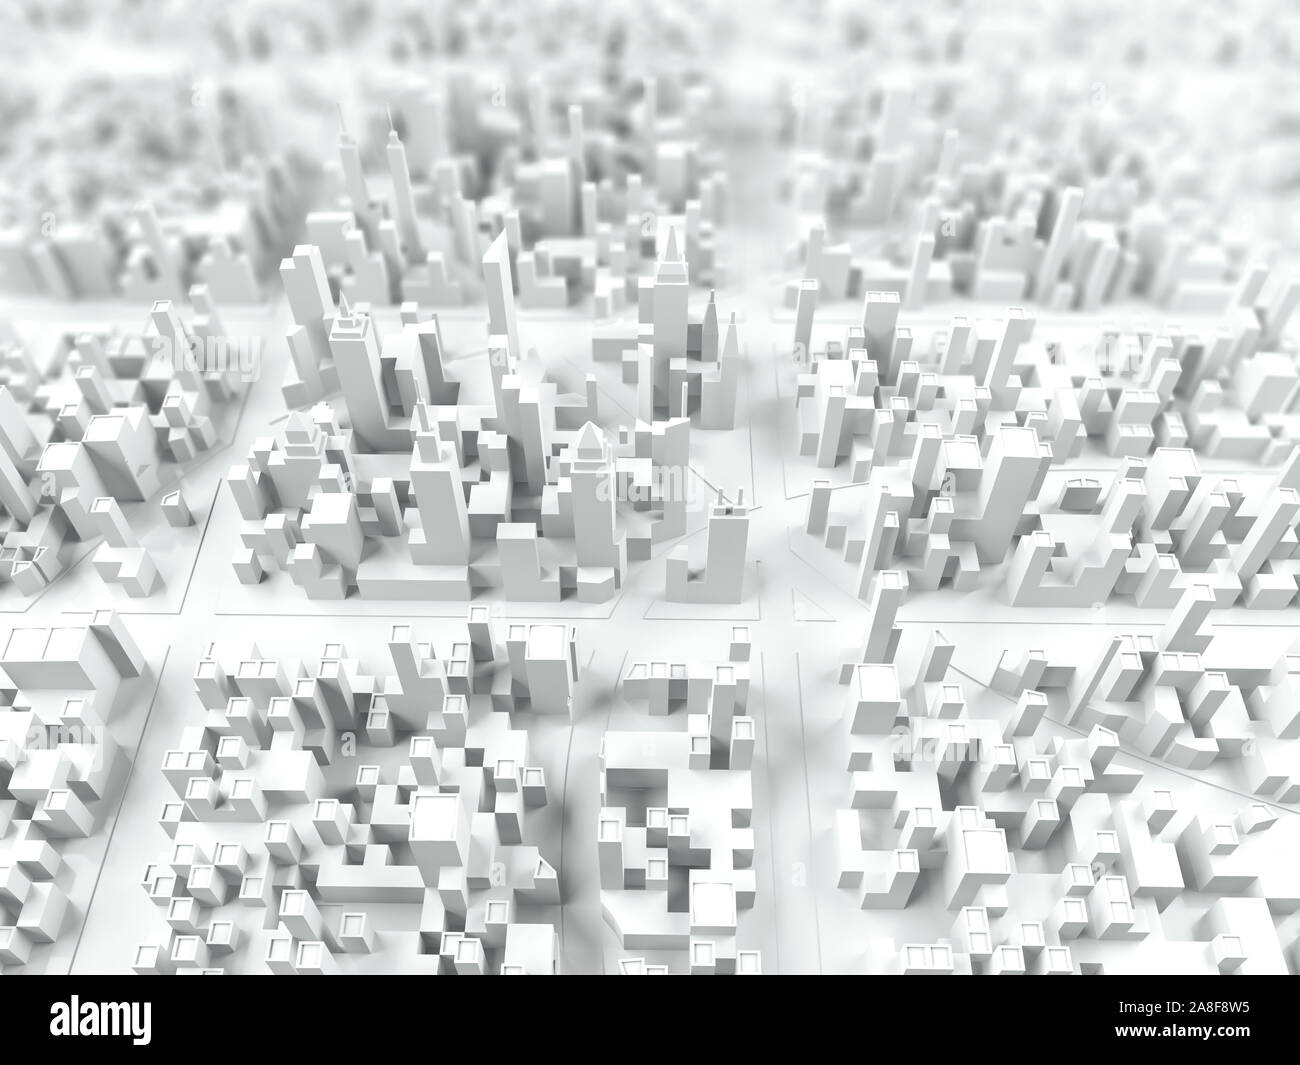 Aerial view of city, illustration Stock Photo